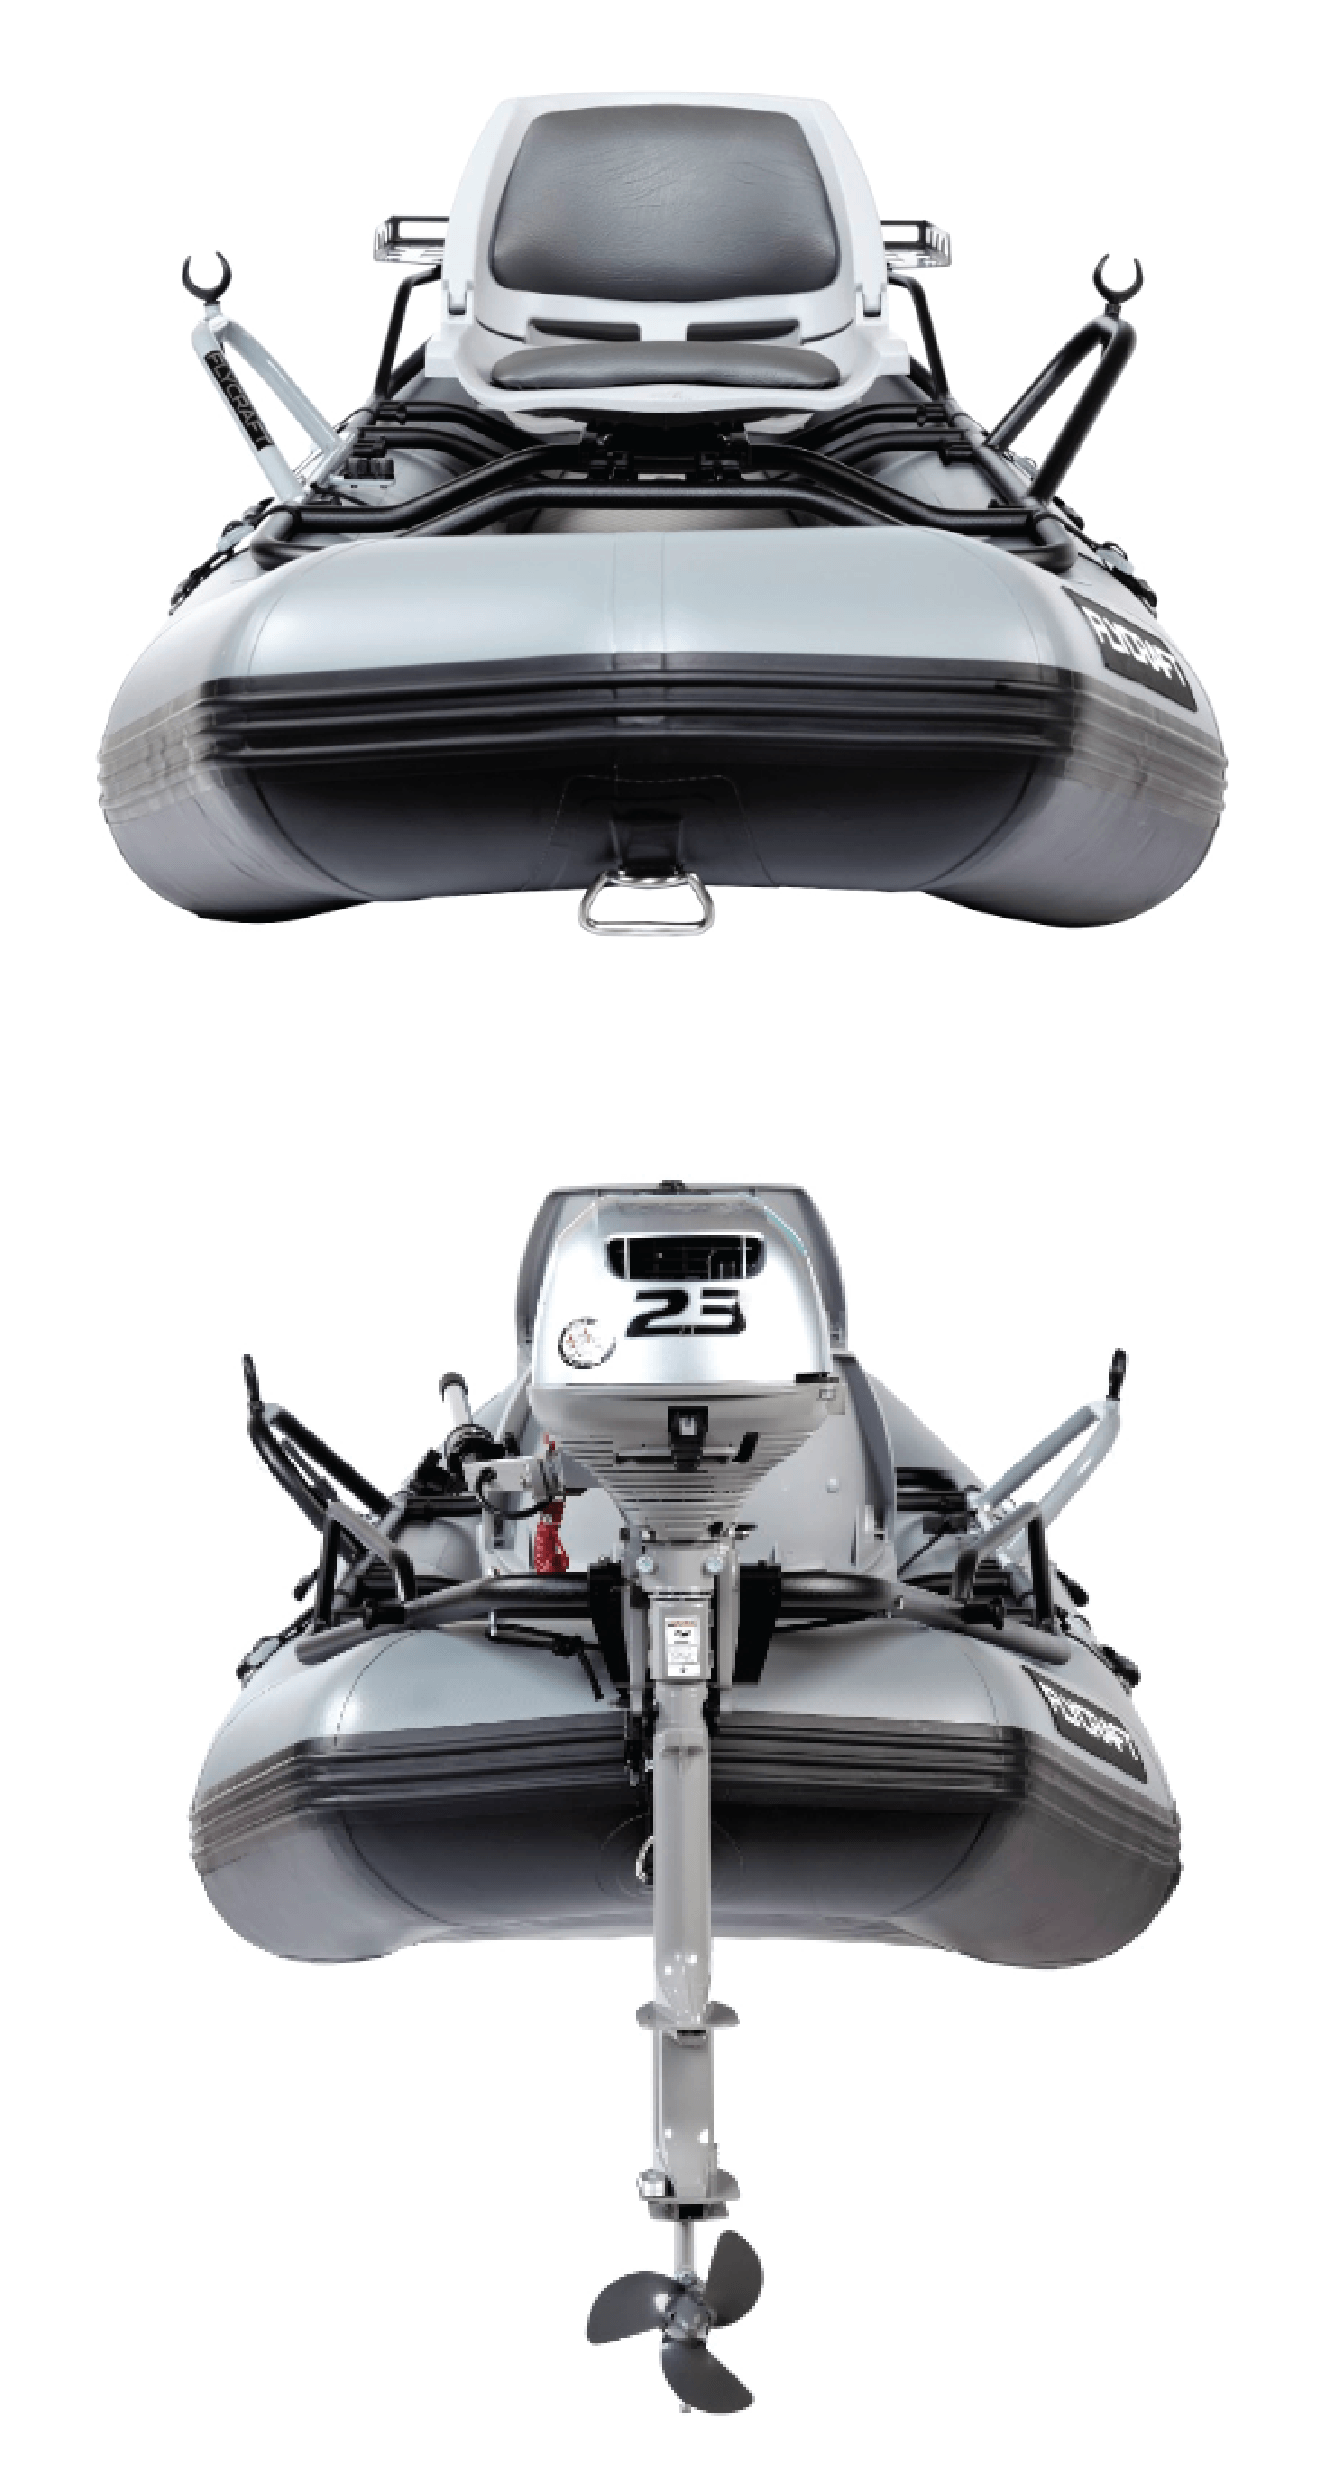 Drift Boat + Inflatable Fishing Boat = Stealth Boat | FLYCRAFT USA